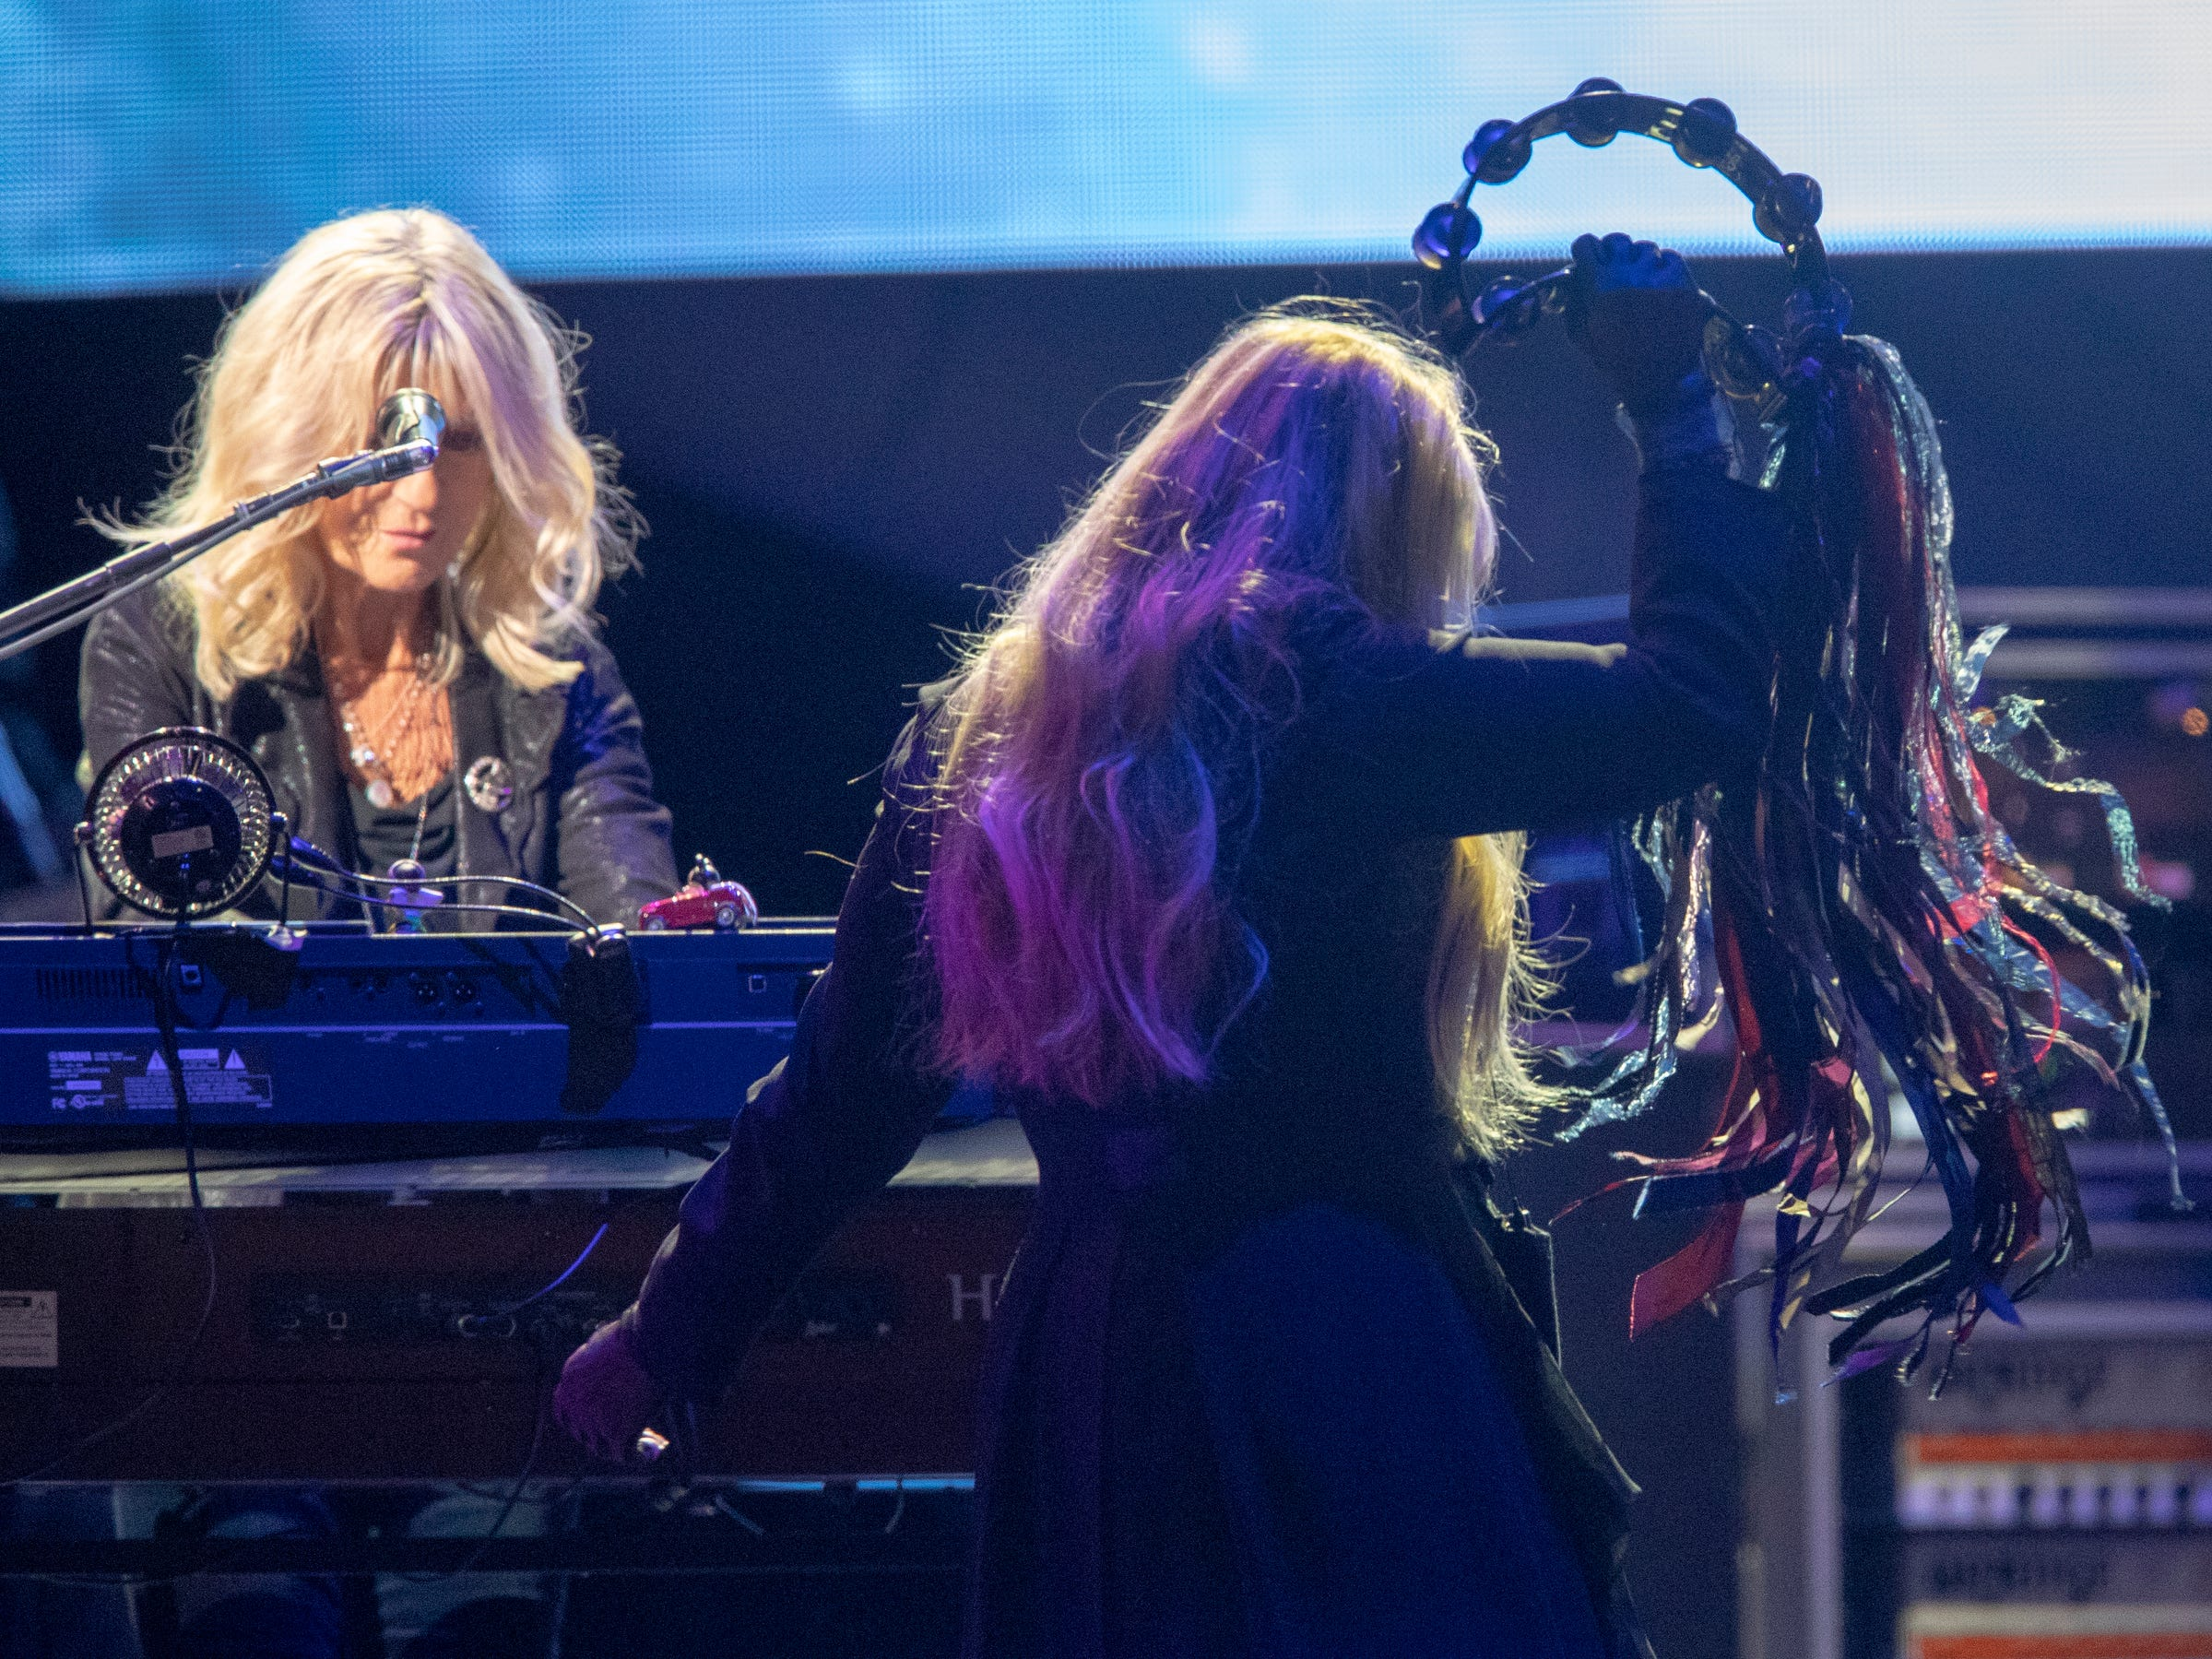 Christine McVie (left), and Stevie Nicks, during a performance by Fleetwood Mac at Bankers Life Fieldhouse, Indianapolis, Tuesday, Oct. 16, 2018. The band is playing on their current North American tour.